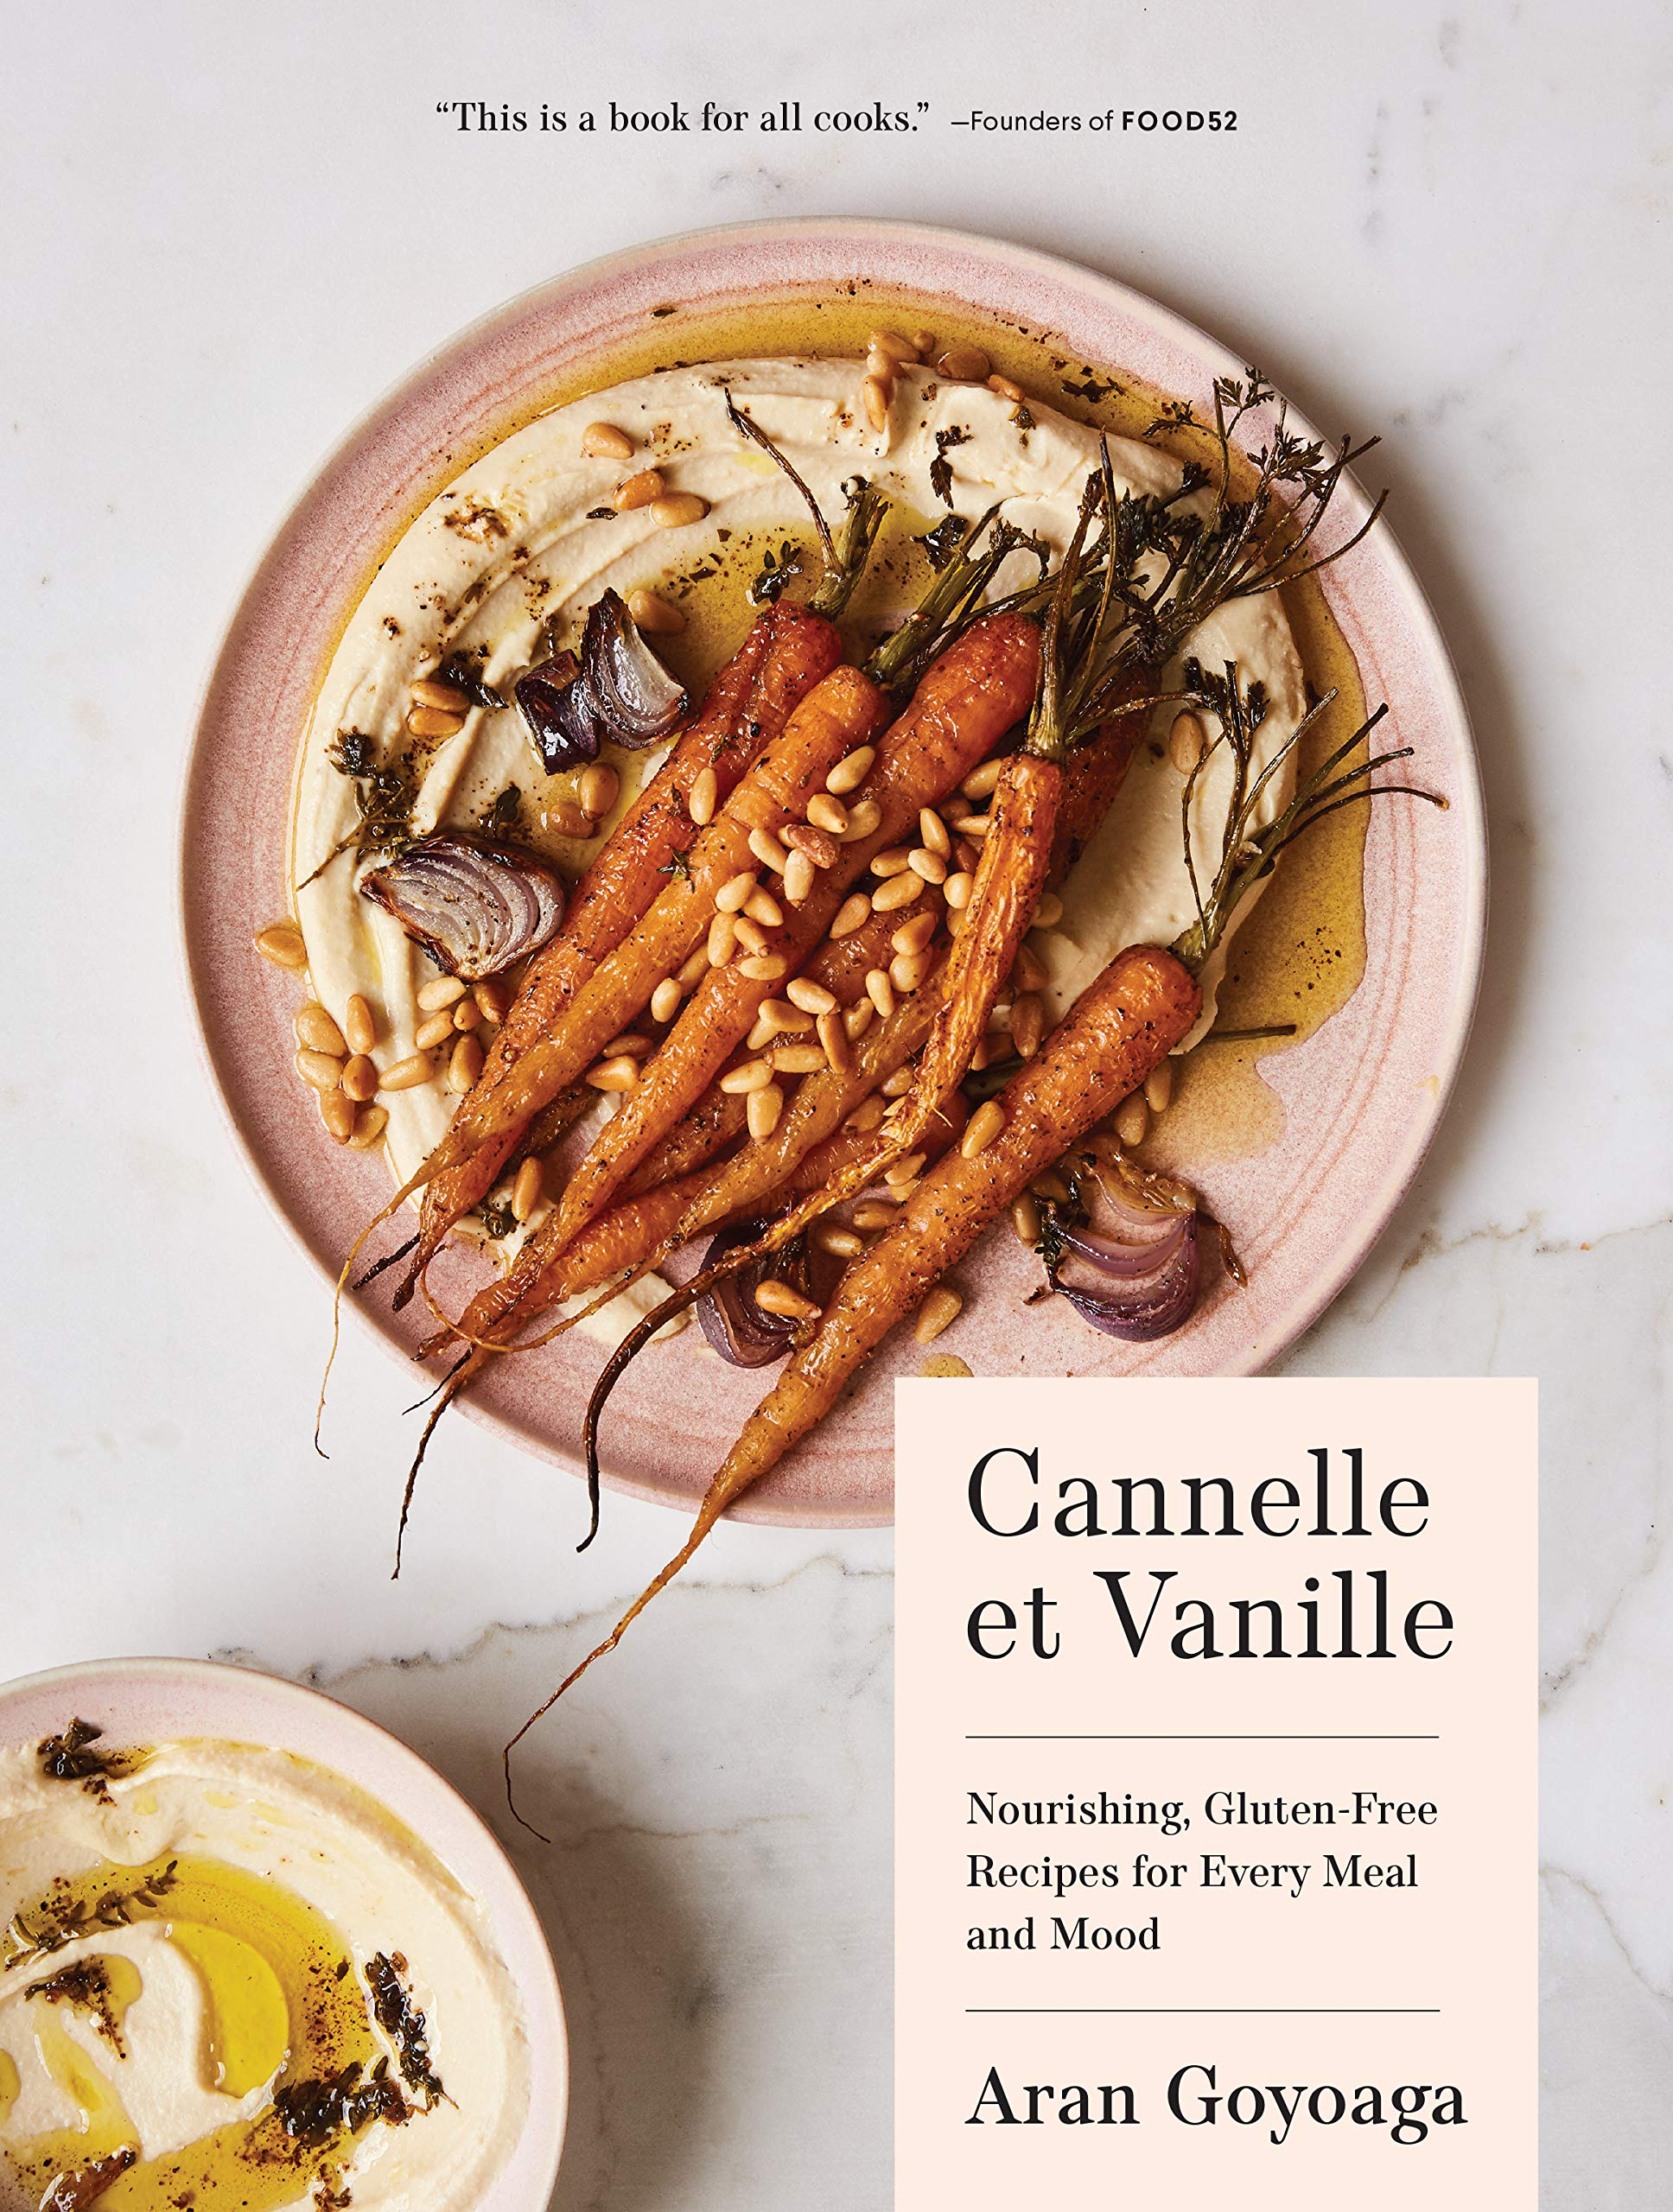 Cannelle et Vanille: Nourishing, Gluten-Free Recipes for Every Meal and Mood by Sasquatch Books